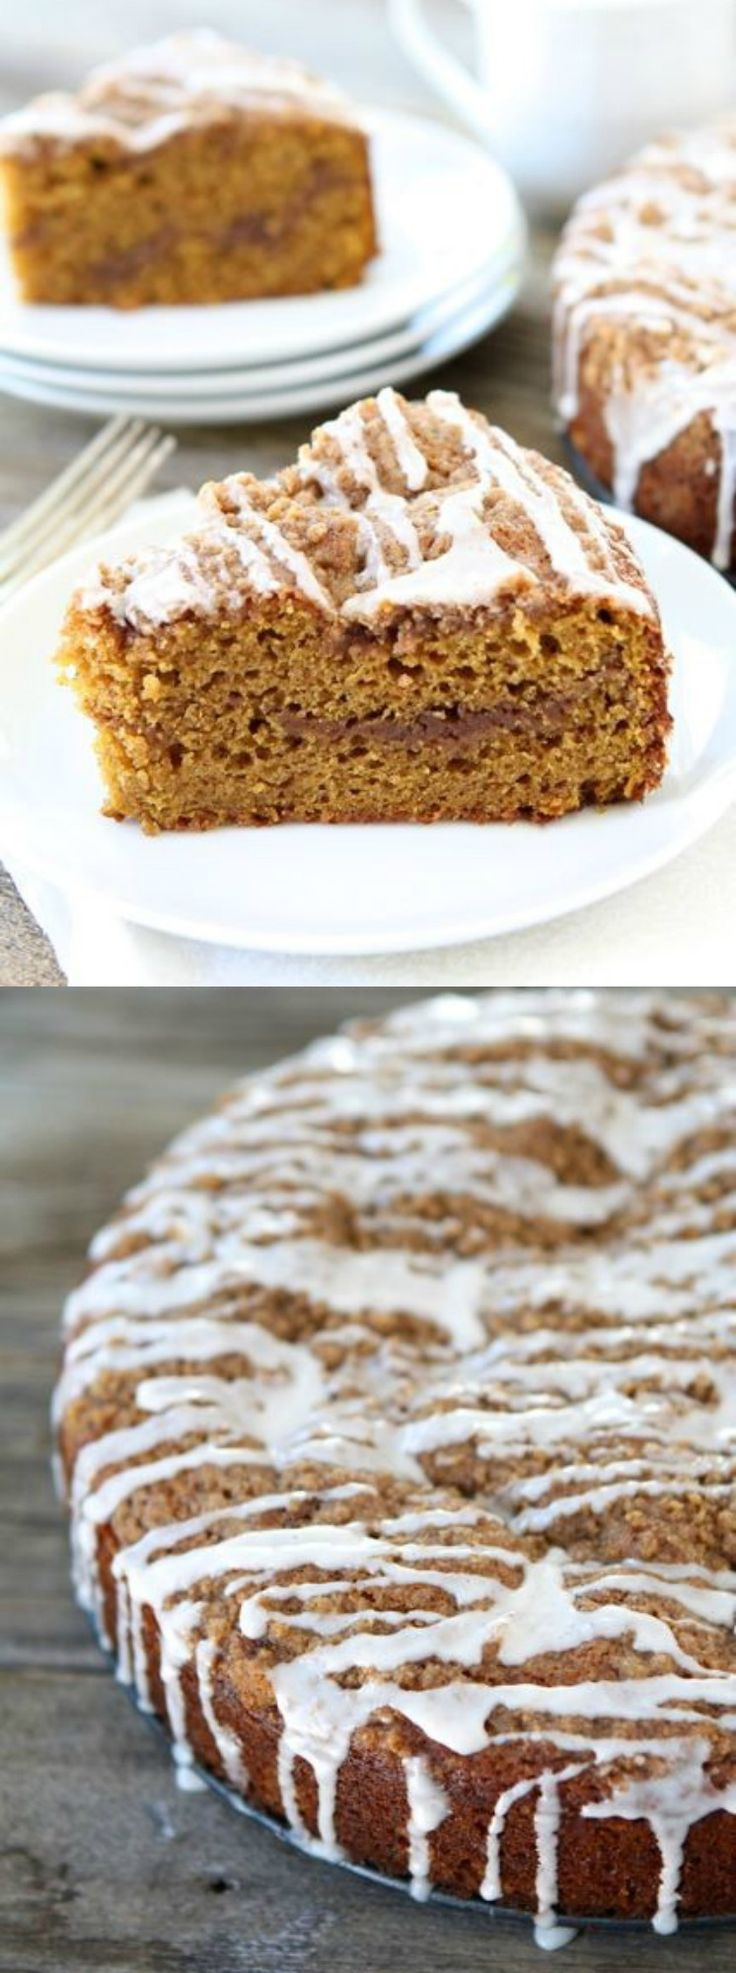 Pumpkin Cinnamon Streusel Coffee Cake Recipe on twopeasandtheirpod.com ...